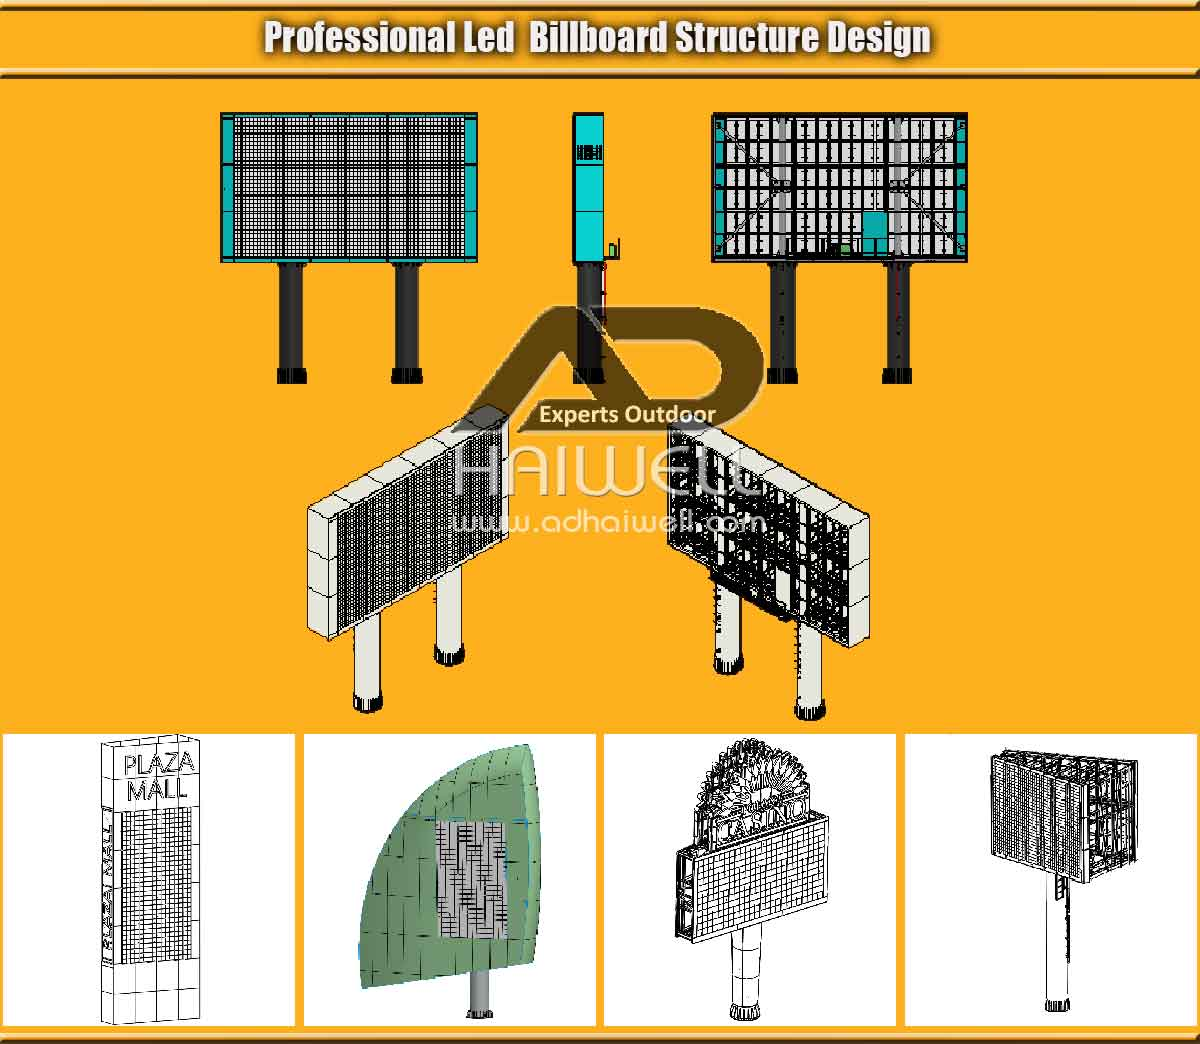 Professional-LED-Billboard-Structure-Design